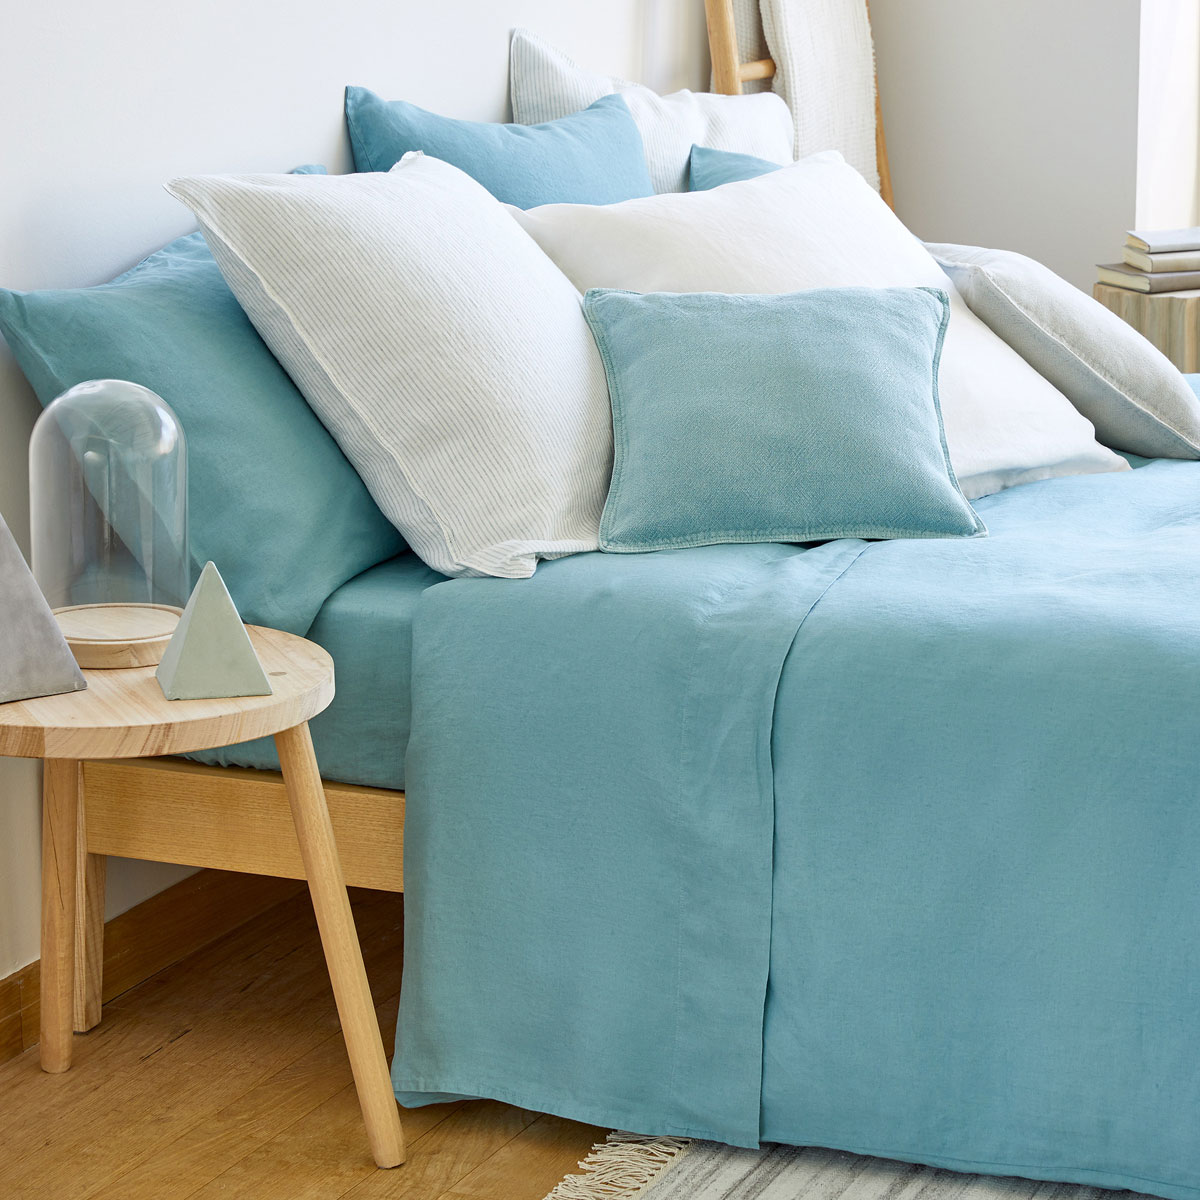 Zara Home - Zara Home houses a range of washed linen amongst their extensive bedding collection that is affordable as well as being great quality. Opt for the neutral colour tones or make more of a statement with the turquoise blue options that evokes sunny Greek islands. More unusual linen sets featuring stripes or contrasting trims can also be found amongst their collection. Keep an eye out for their SS17 linen tableware collection too! Prices start at £69.99.www.zarahome.com